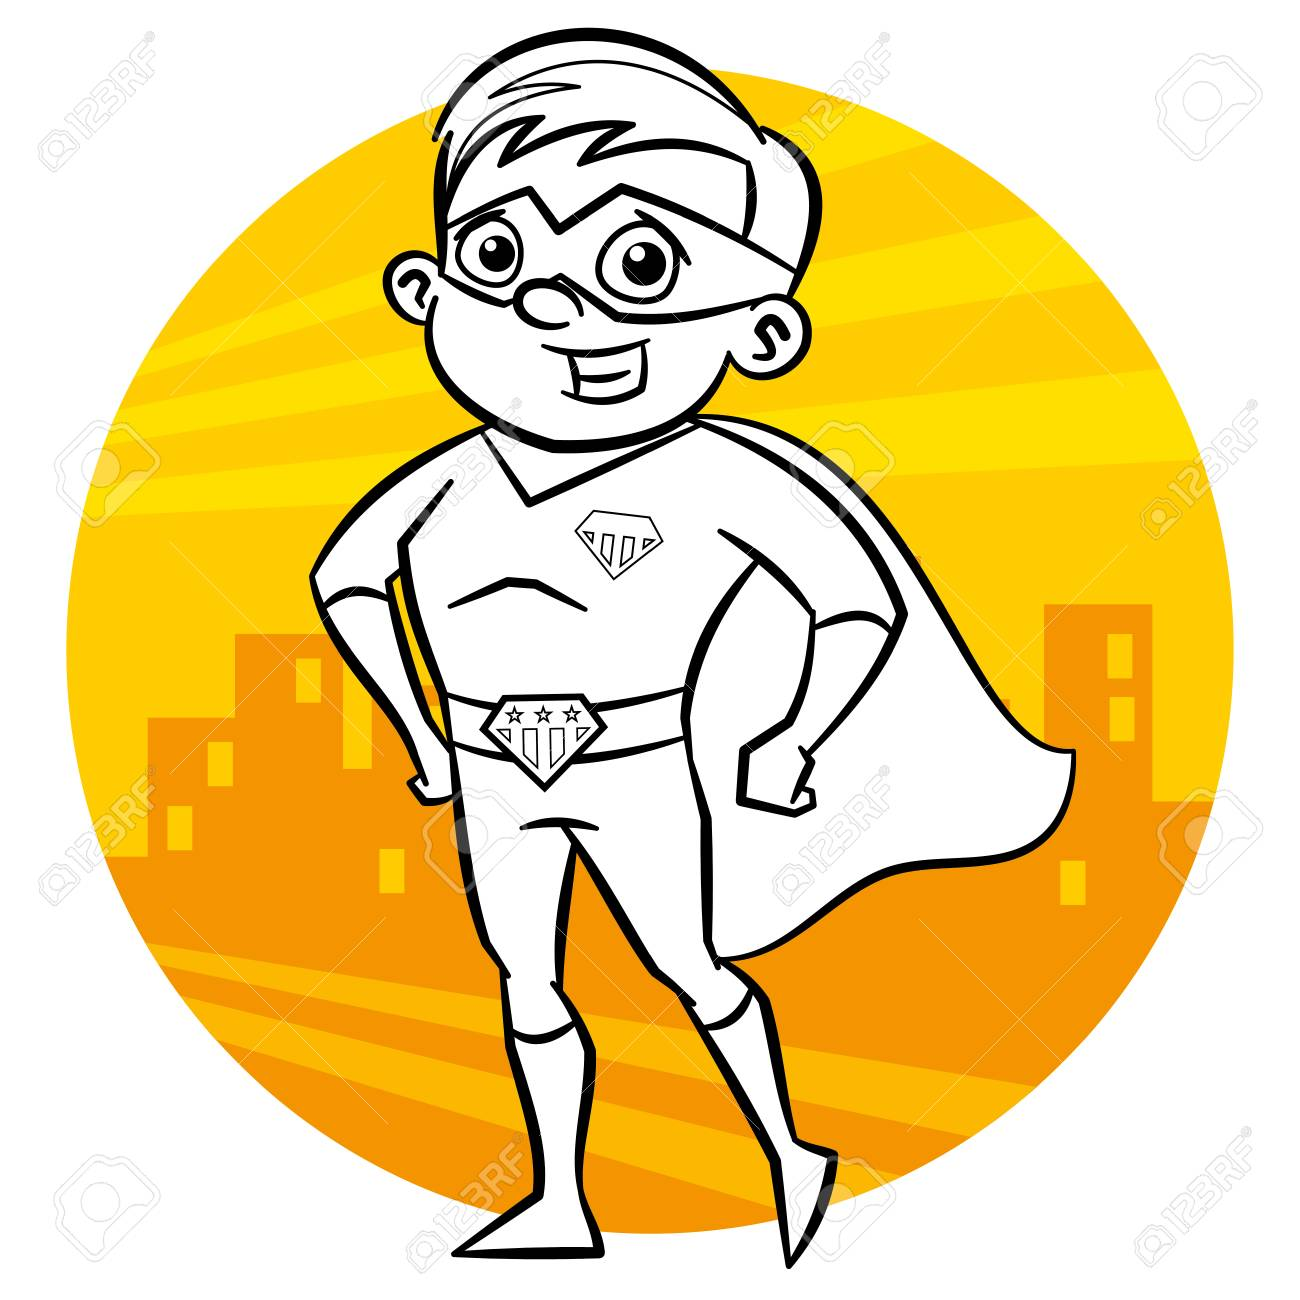 Superhero Coloring Page Comic Character Isolated On White Background